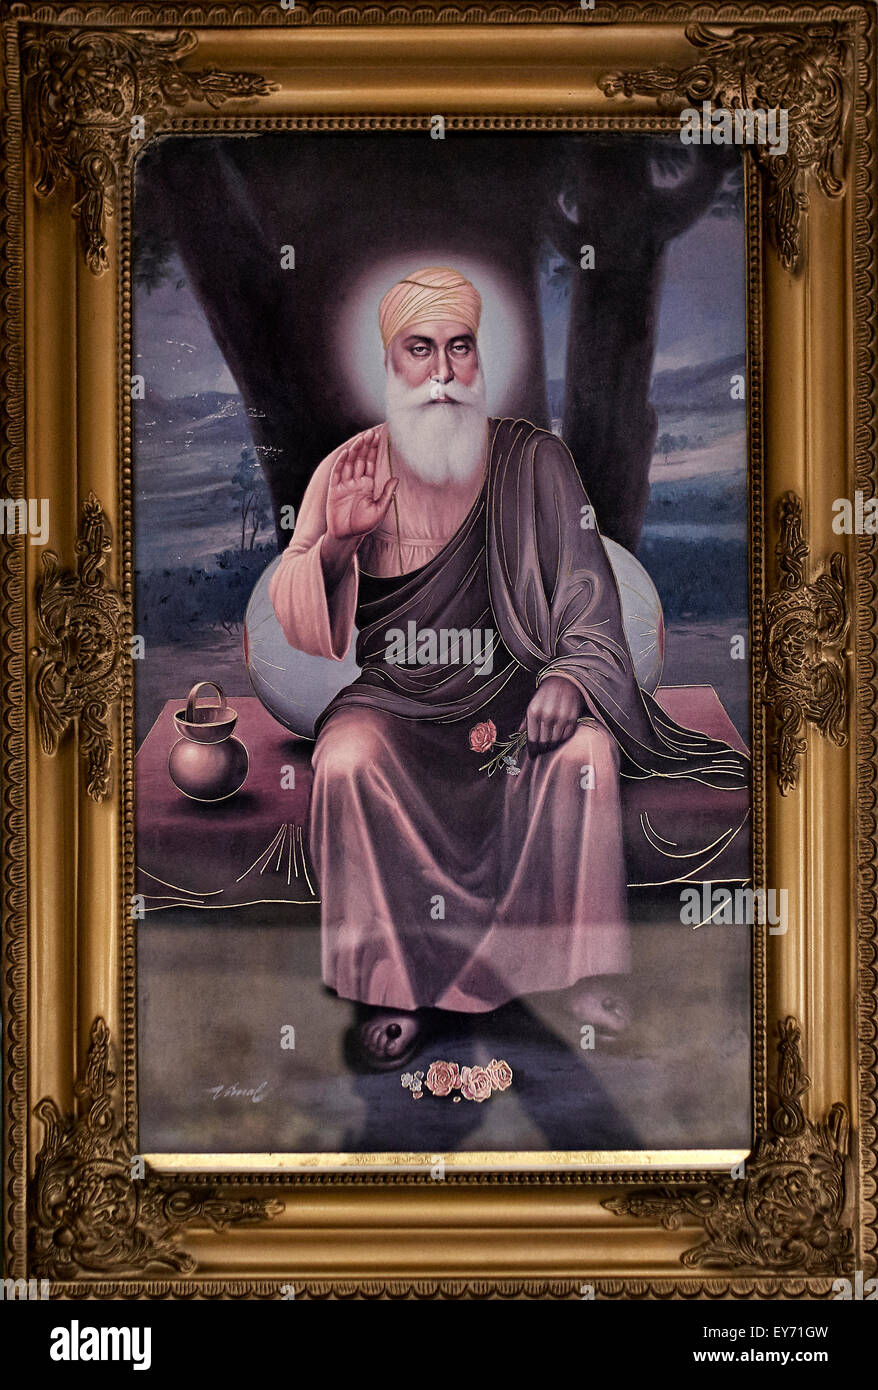 Painting of a revered Sikh Guru - Stock Image